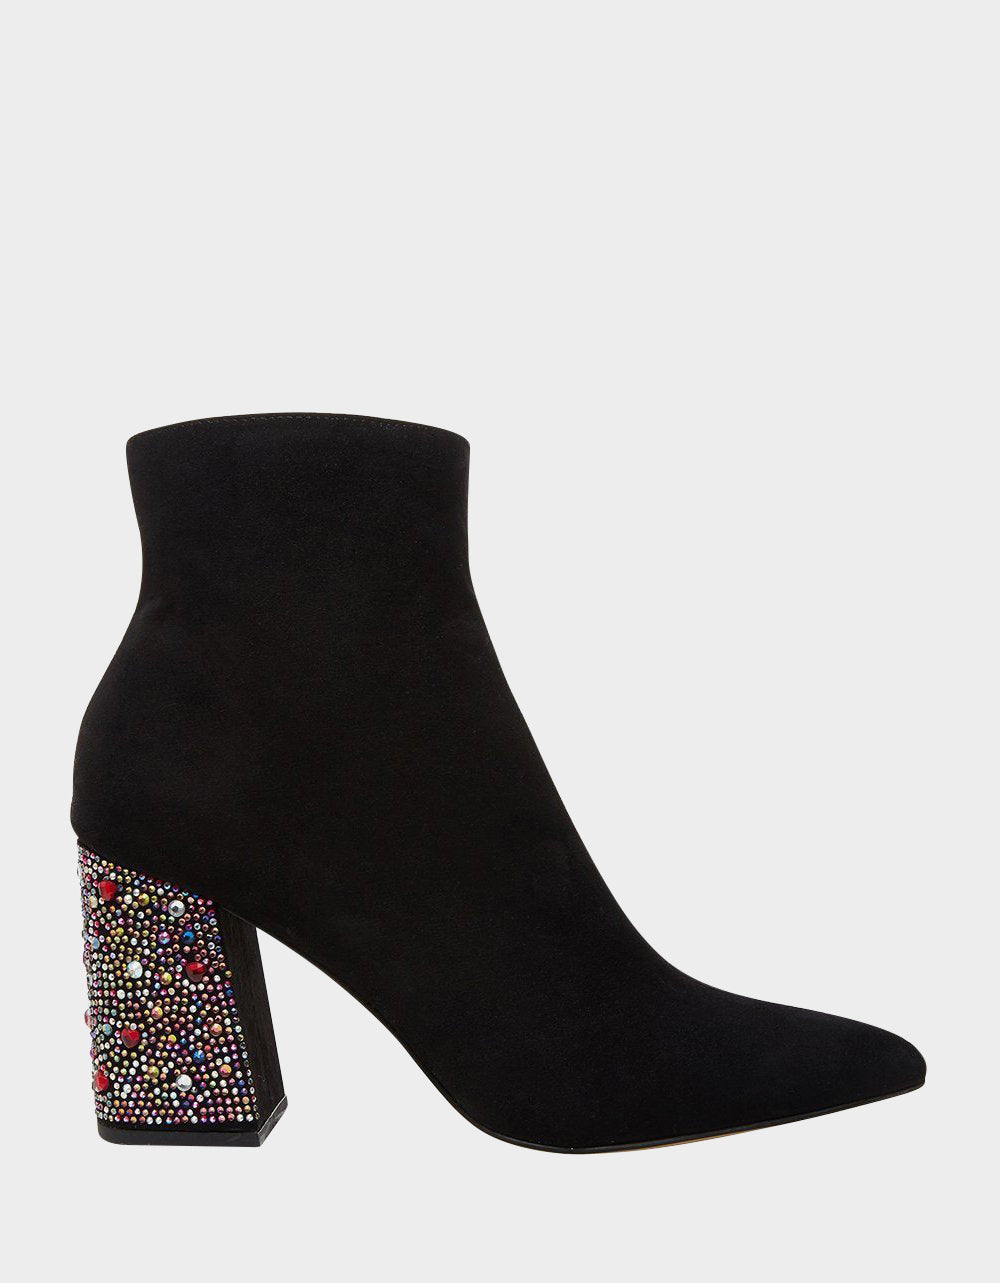 KASSIE BLACK - SHOES - Betsey Johnson